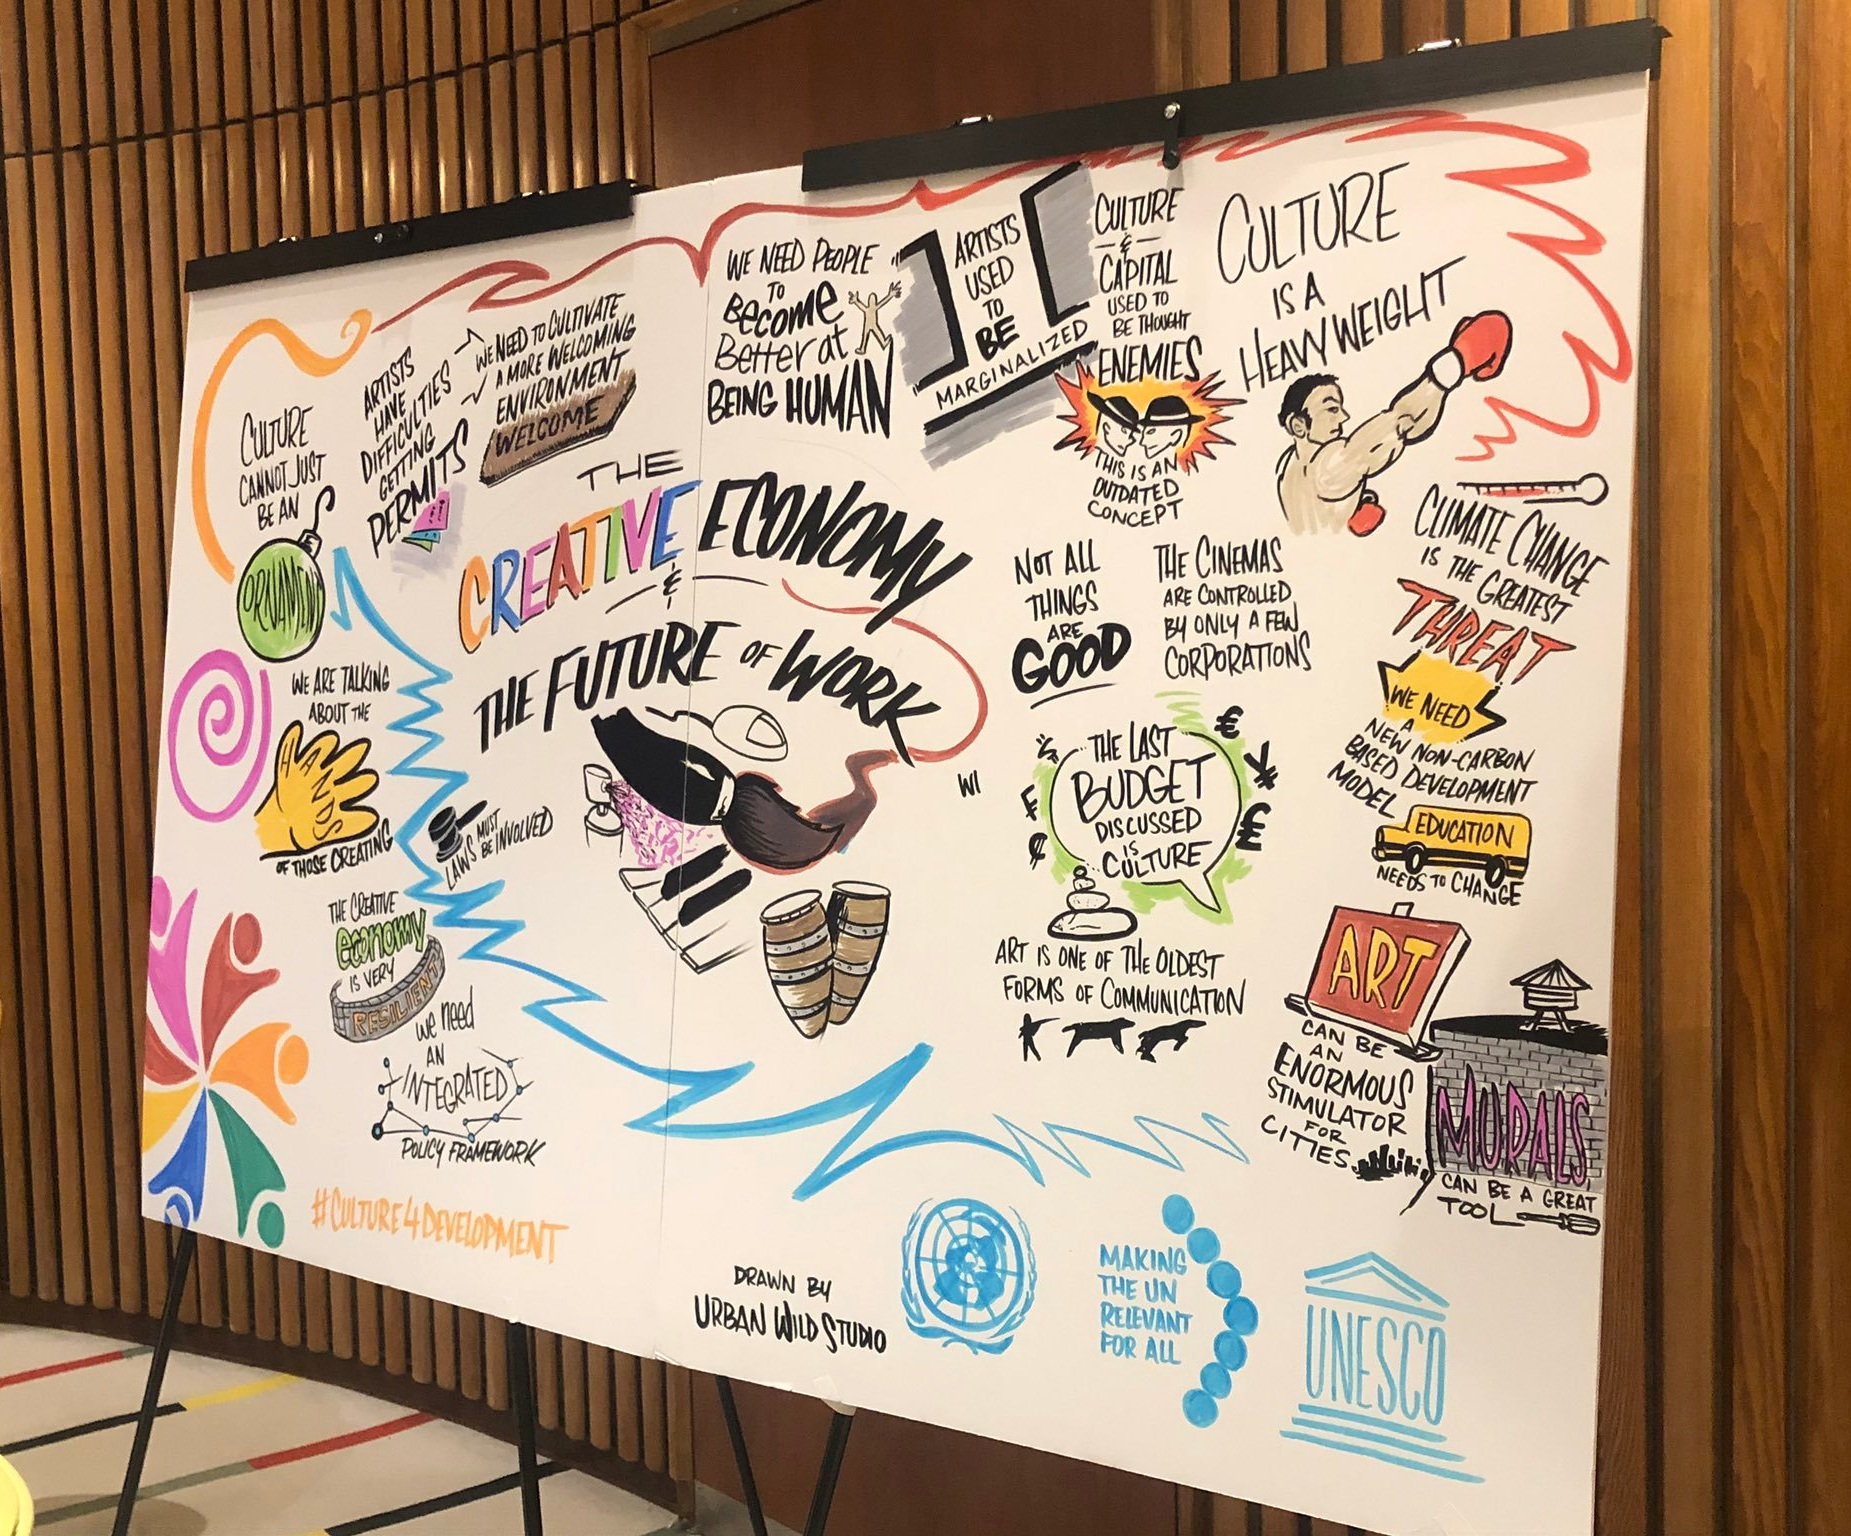 Drew universal perspectives on culture and innovation at a multi-nation UN panel -